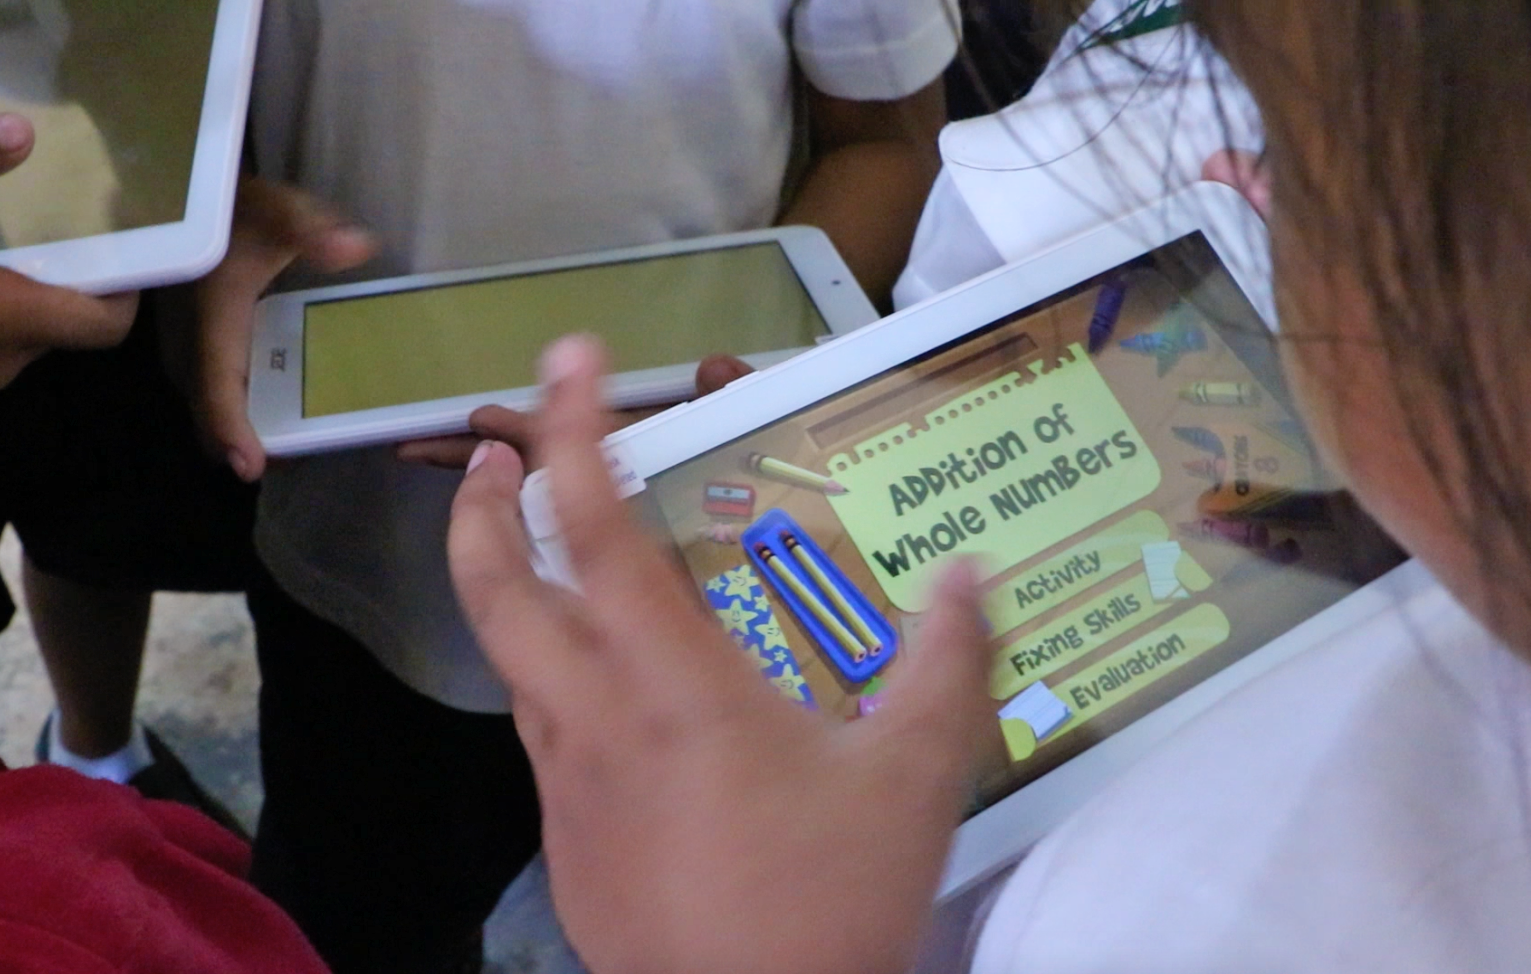 PLDT employees bring digital learning to Aparri school